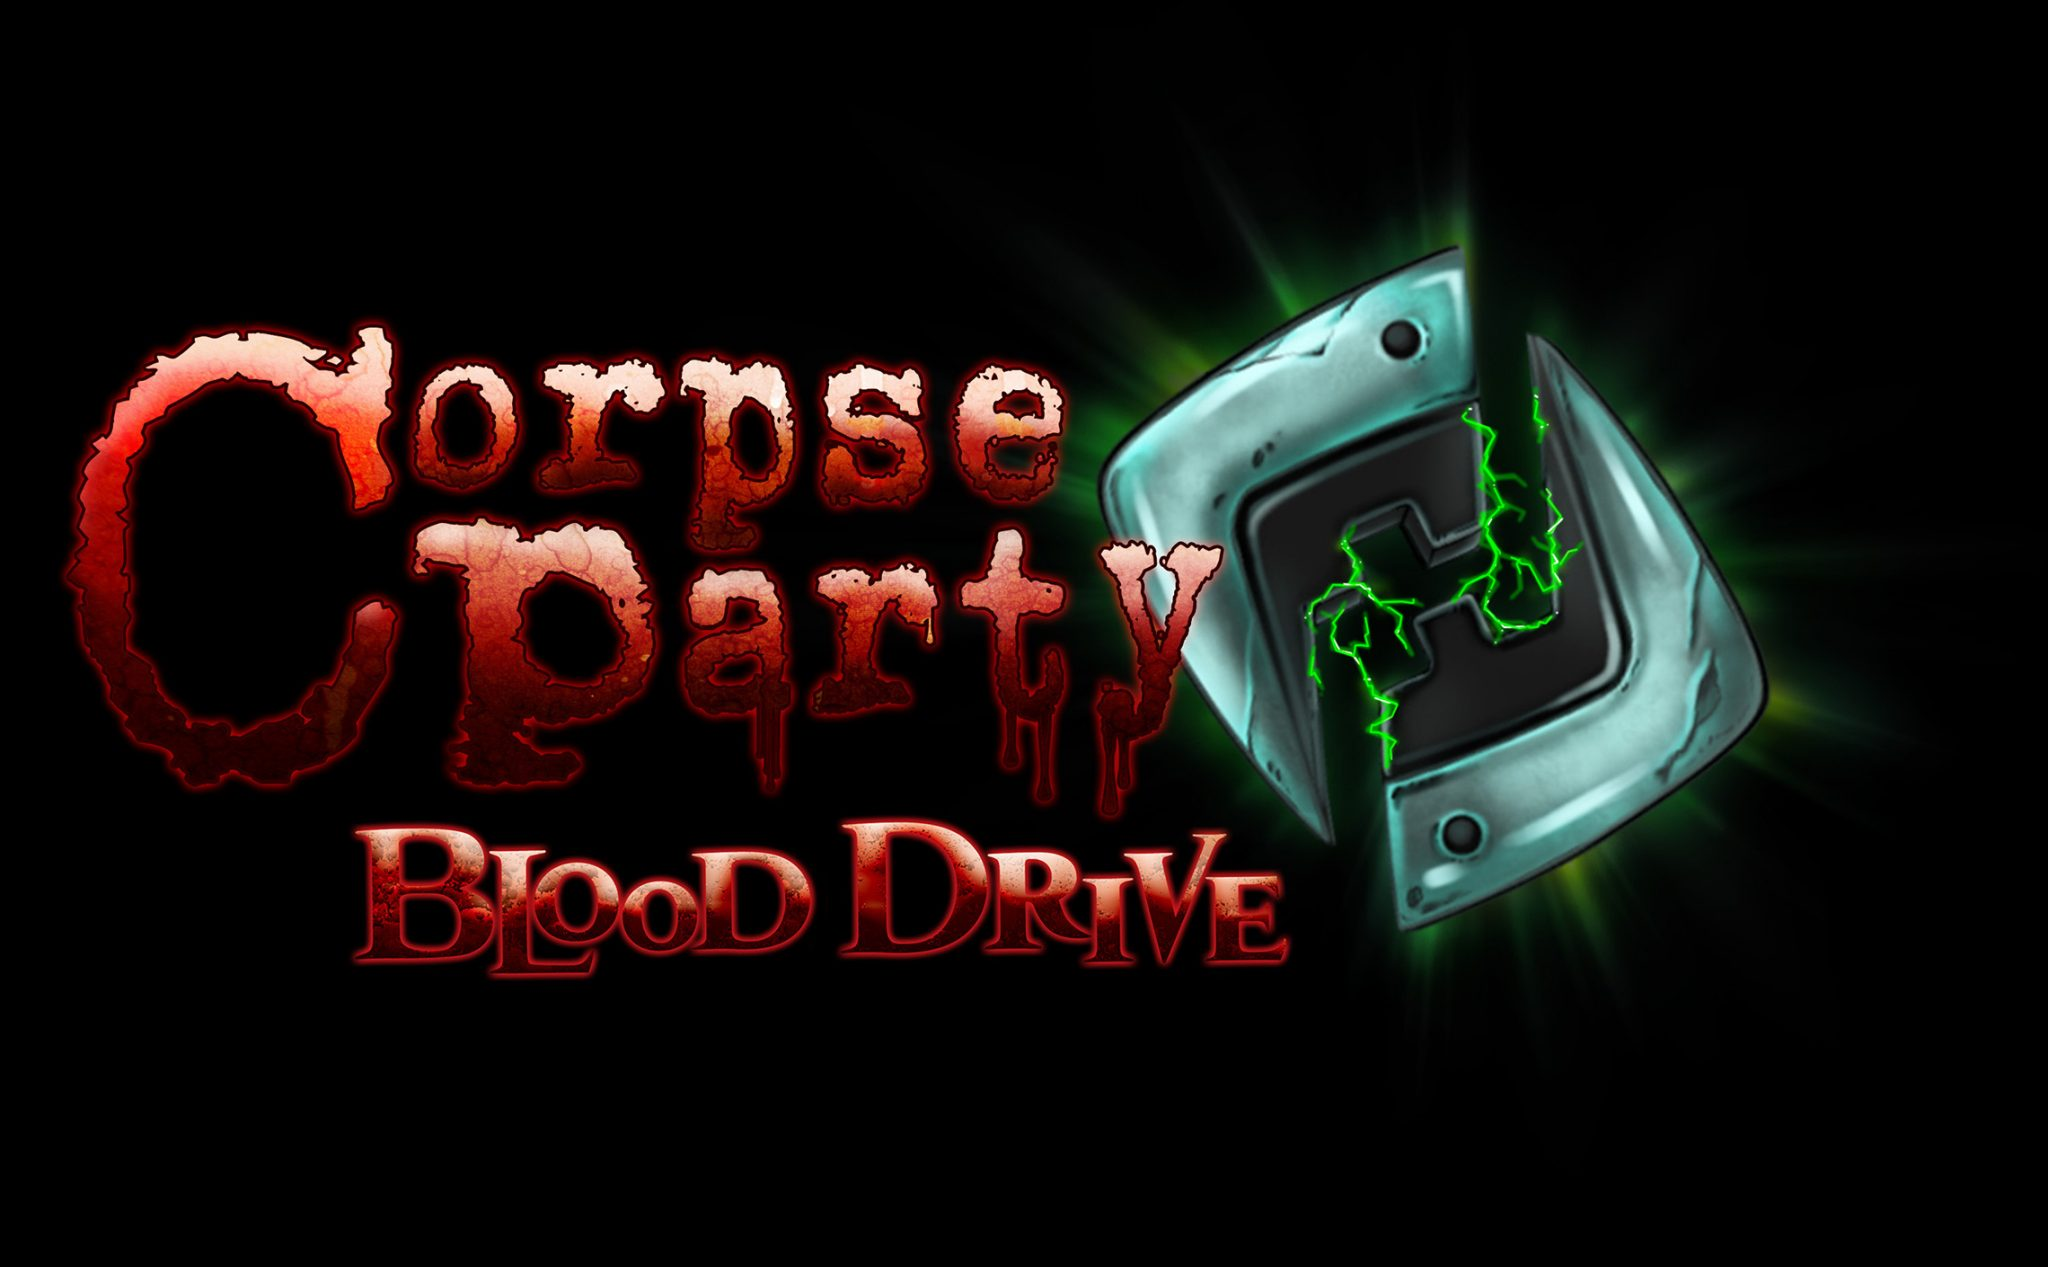 corpse-party-blood-drive-stuff (1)